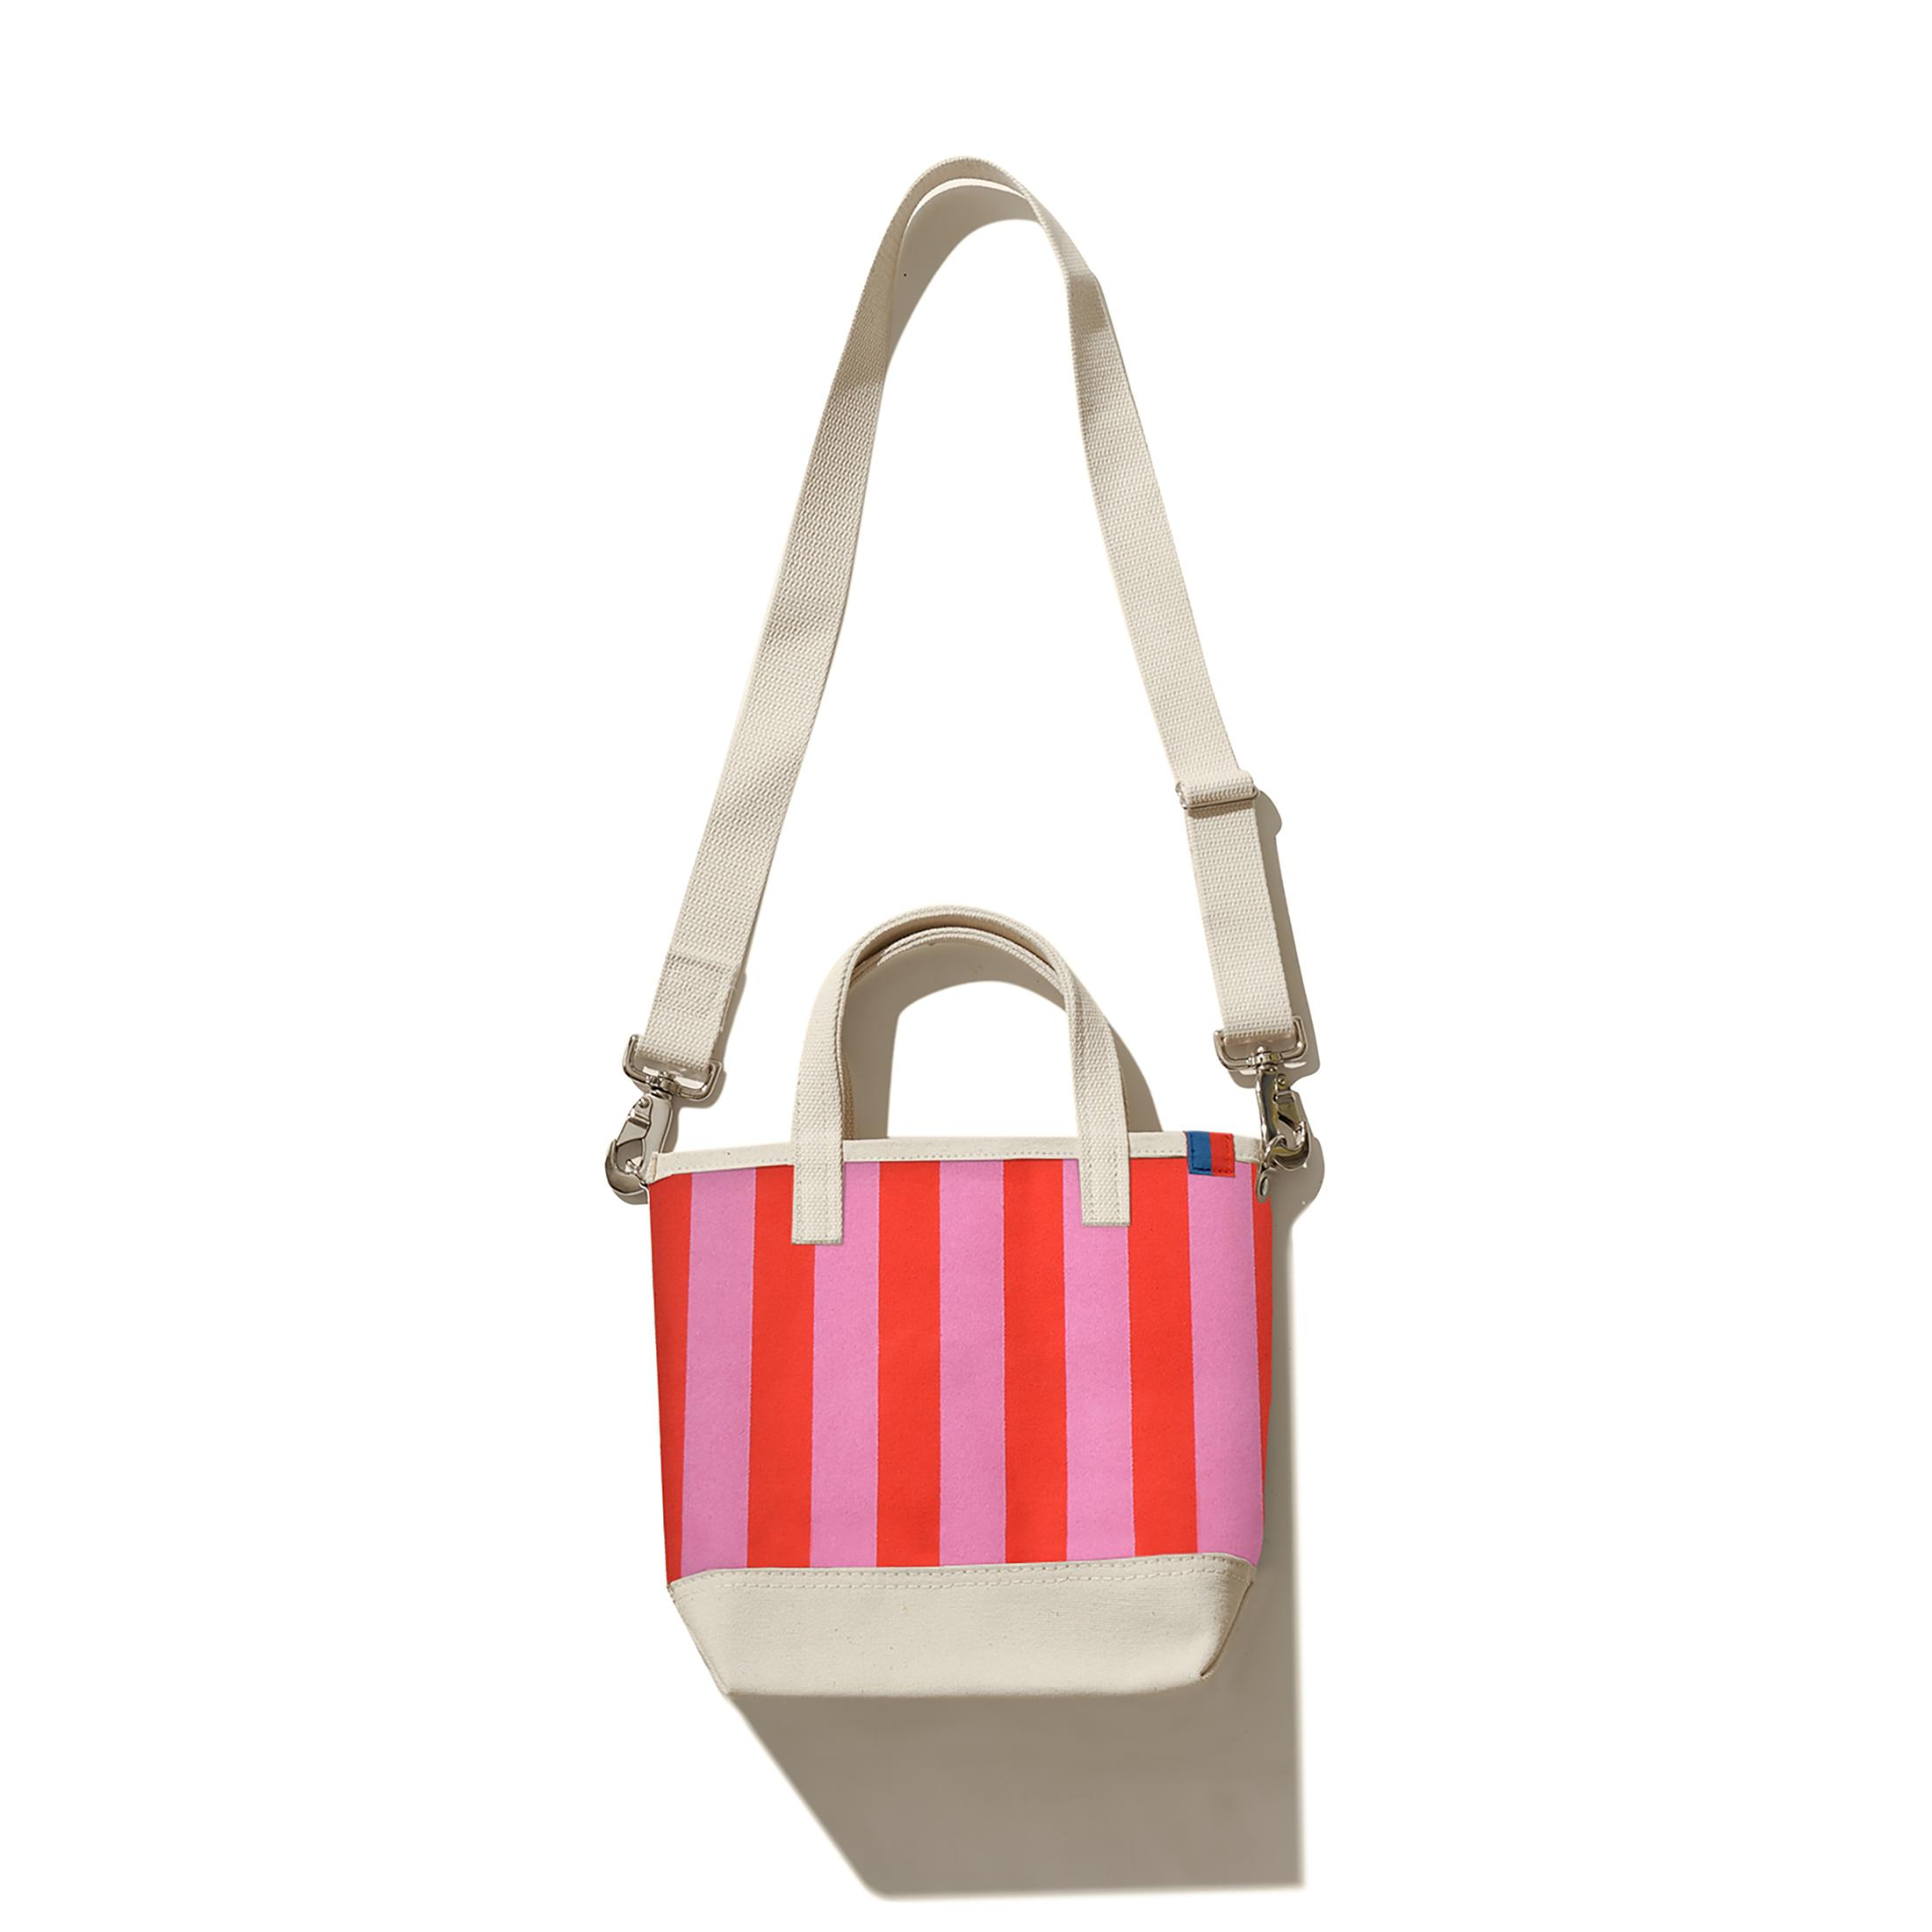 The All Over Striped Bucket - Pink/Poppy